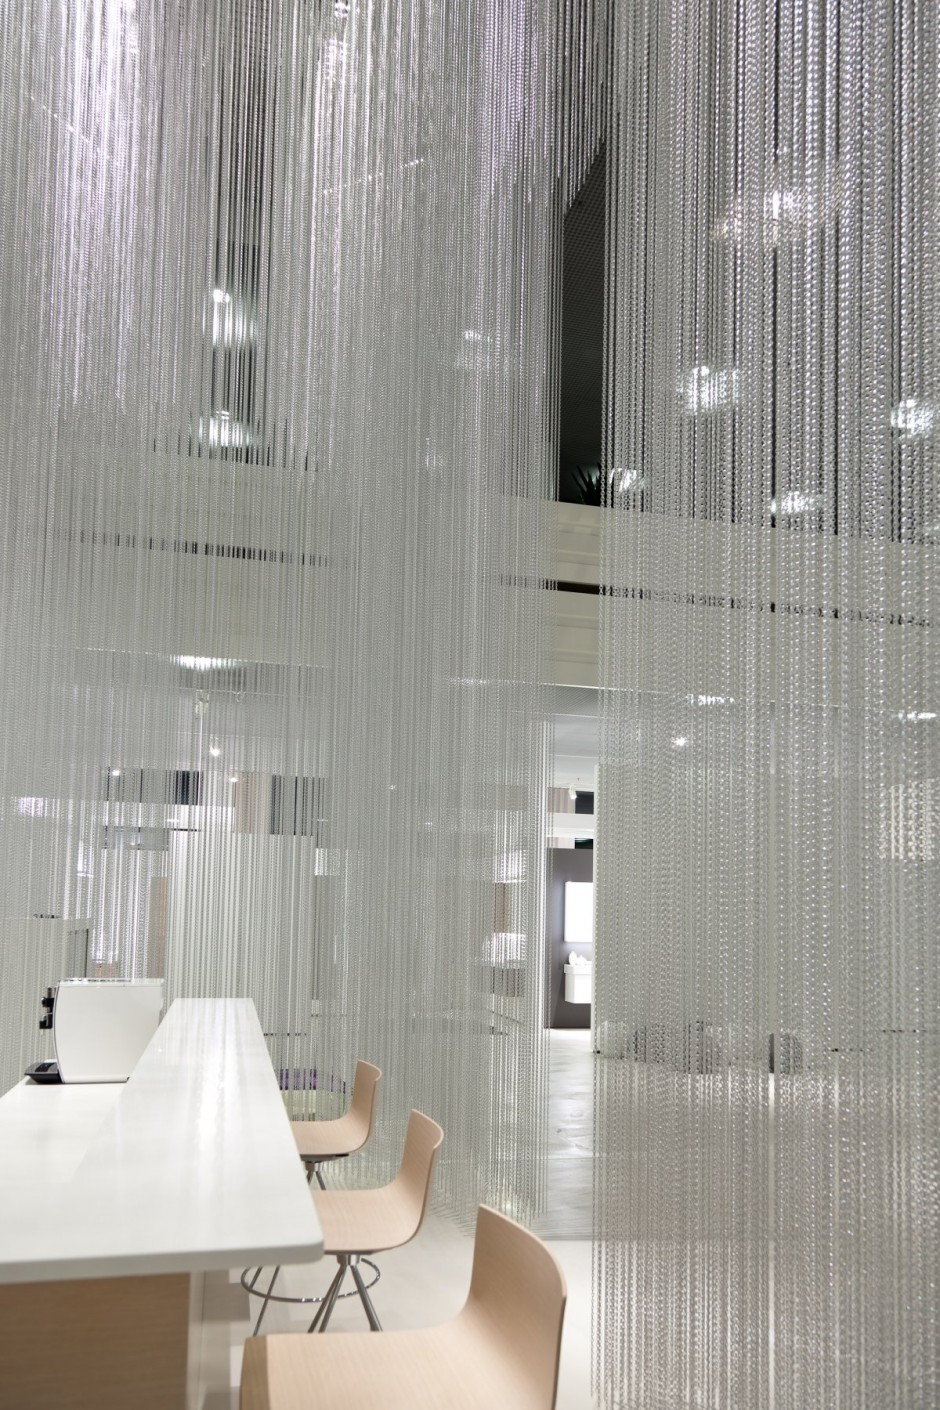 Rain like curtains by KriskaDECOR